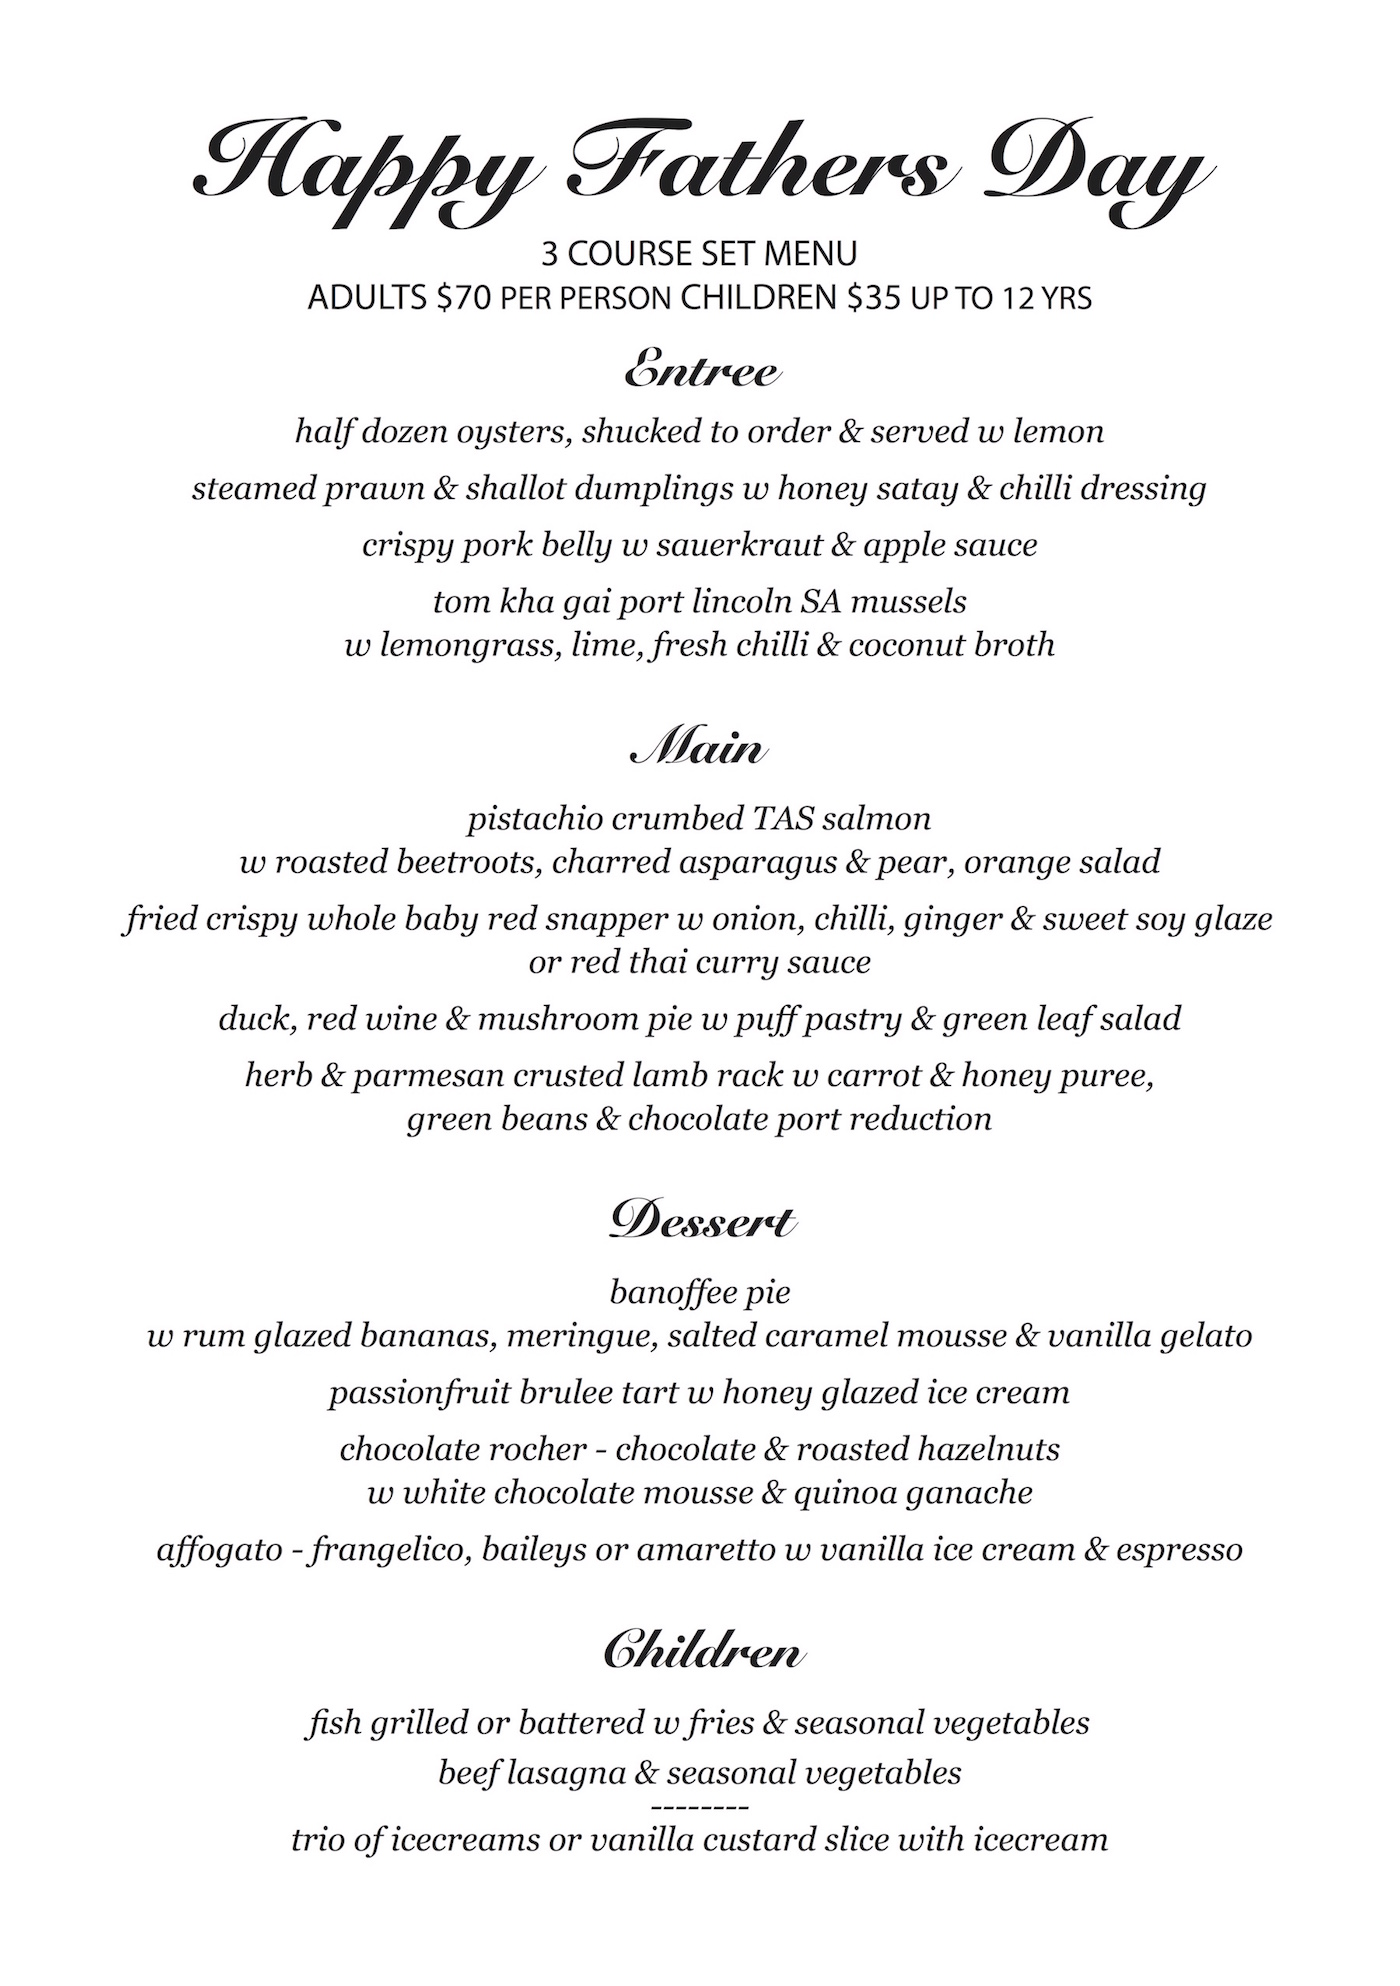 FATHERS DAY MENU SEPT 2017 Copy.jpg